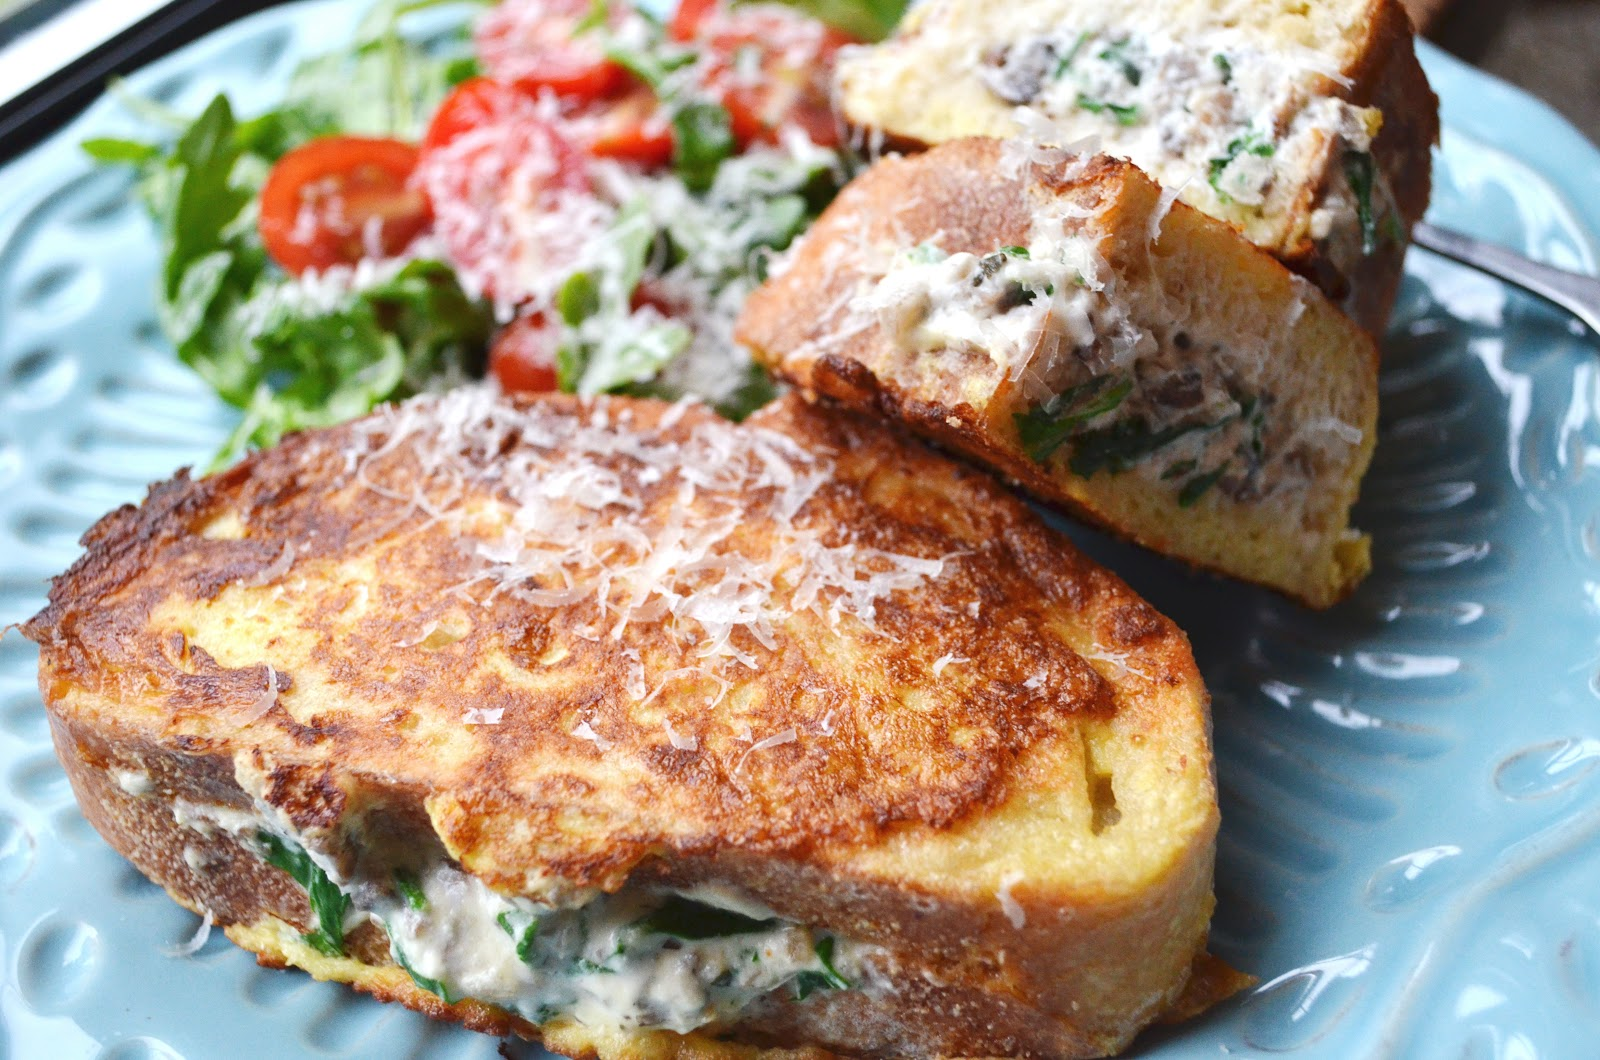 iron stef: savory stuffed french toast